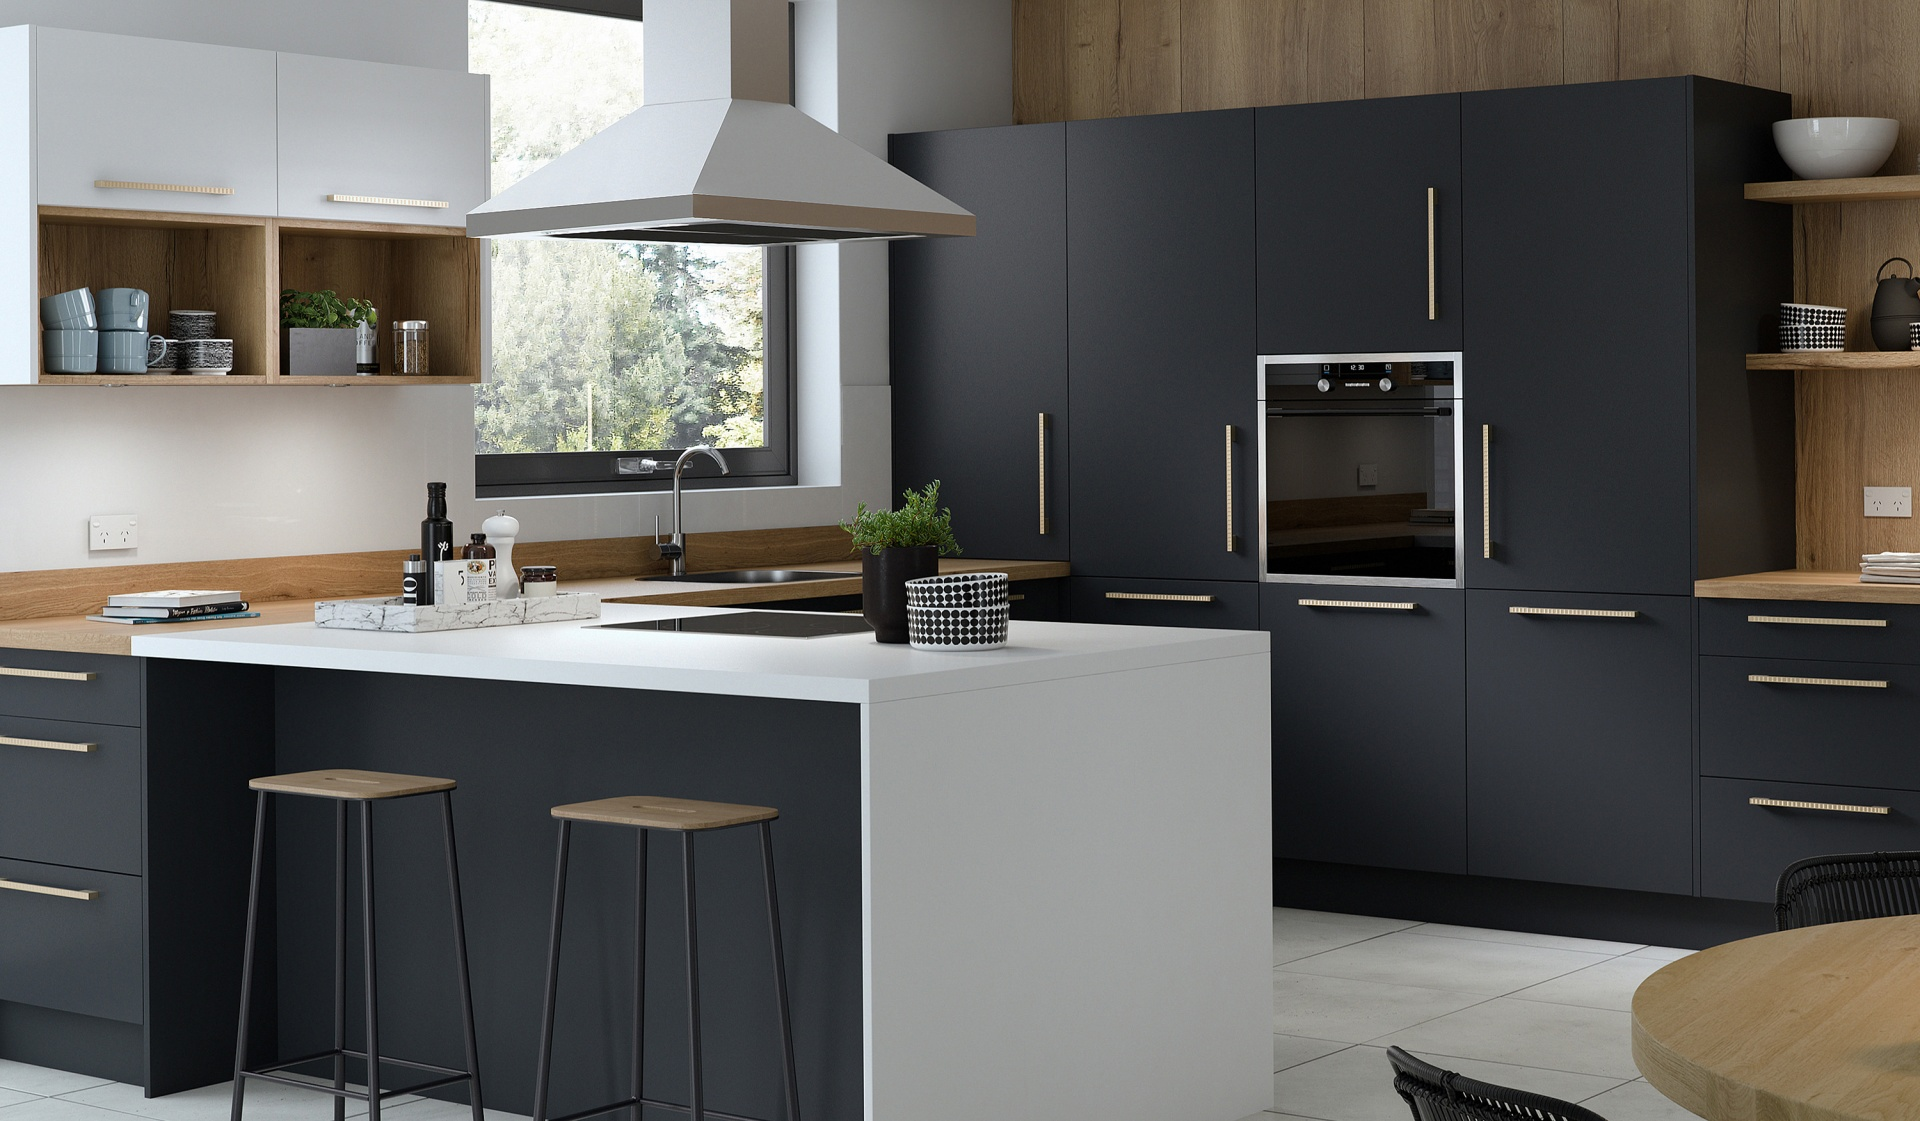 ECO1 Kitchens opts for OptiMatt PET for a quality non-toxic alternative